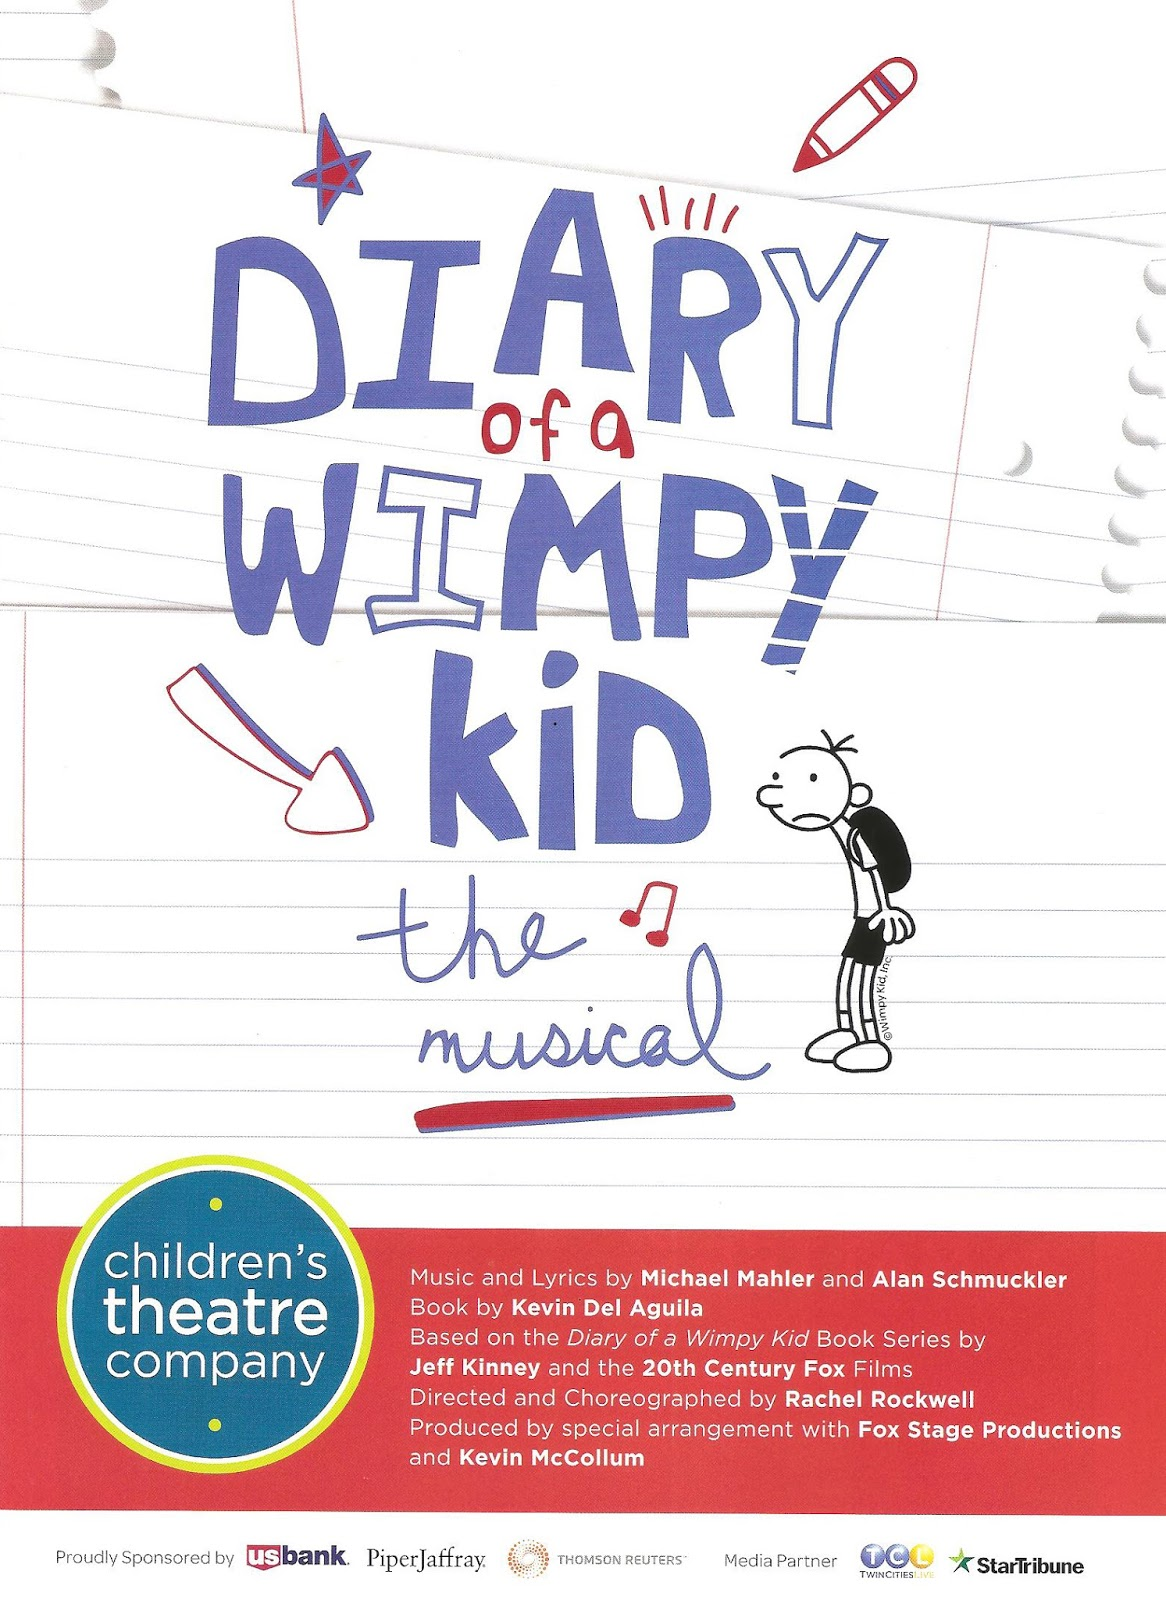 Cherry and spoon diary of a wimpy kid the musical at childrens diary of a wimpy kid the musical ive got an animal heart for you even though i have no familiarity with the successful book series or movies solutioingenieria Image collections